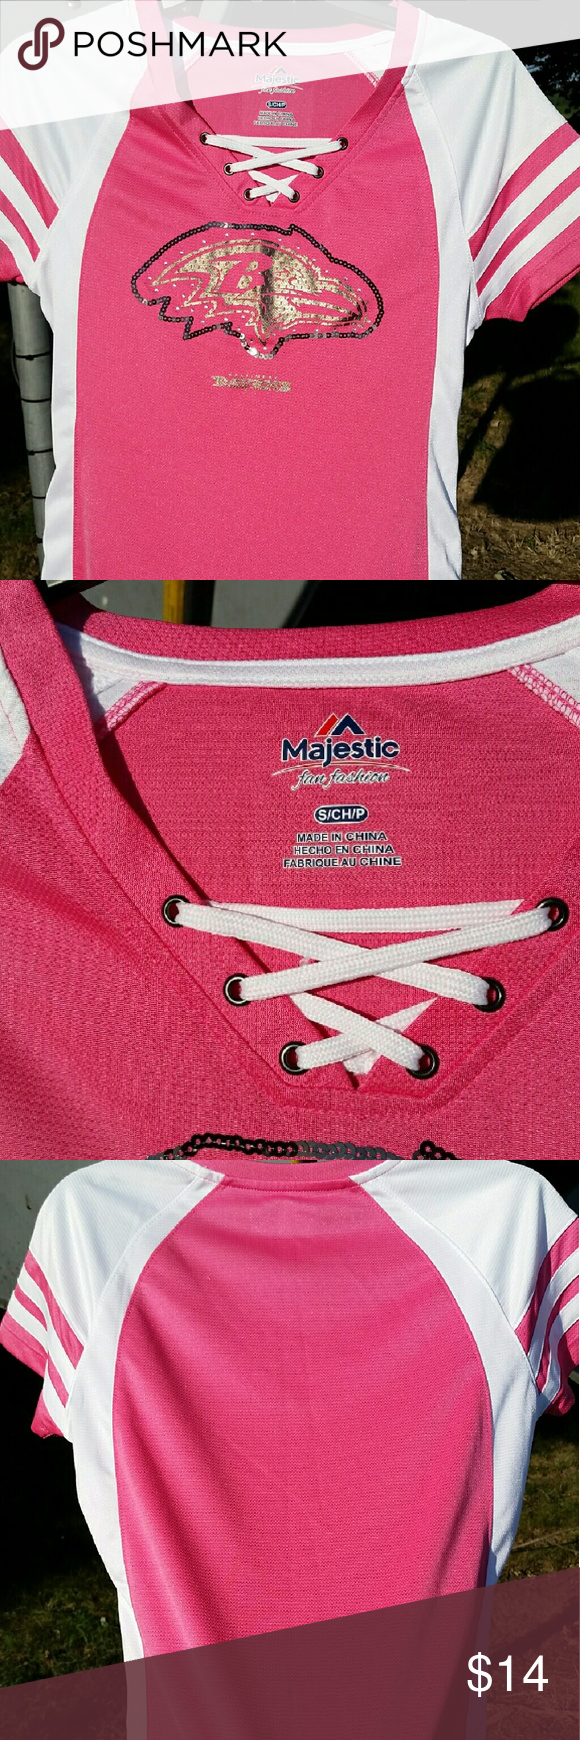 Baltimore Ravens Top Pink & white jersey top with sparkly